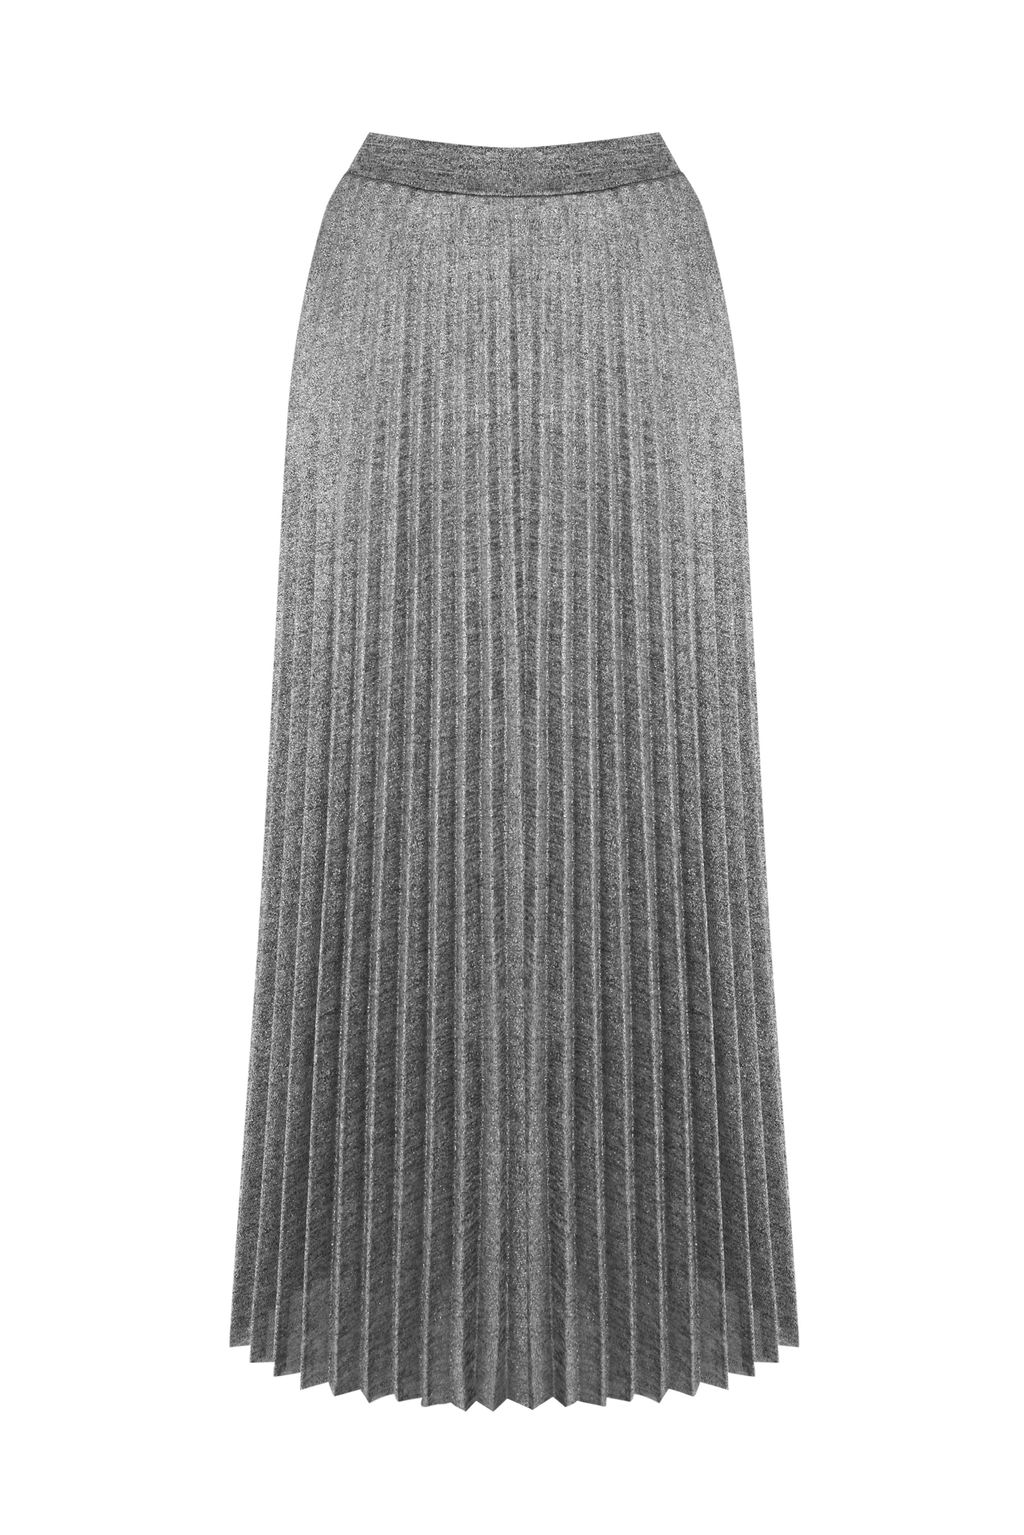 Metallic Pleated Skirt, Silver - length: calf length; pattern: plain; fit: loose/voluminous; style: pleated; waist: high rise; fibres: polyester/polyamide - 100%; occasions: occasion, creative work; pattern type: fabric; texture group: other - light to midweight; predominant colour: pewter; season: a/w 2016; wardrobe: highlight